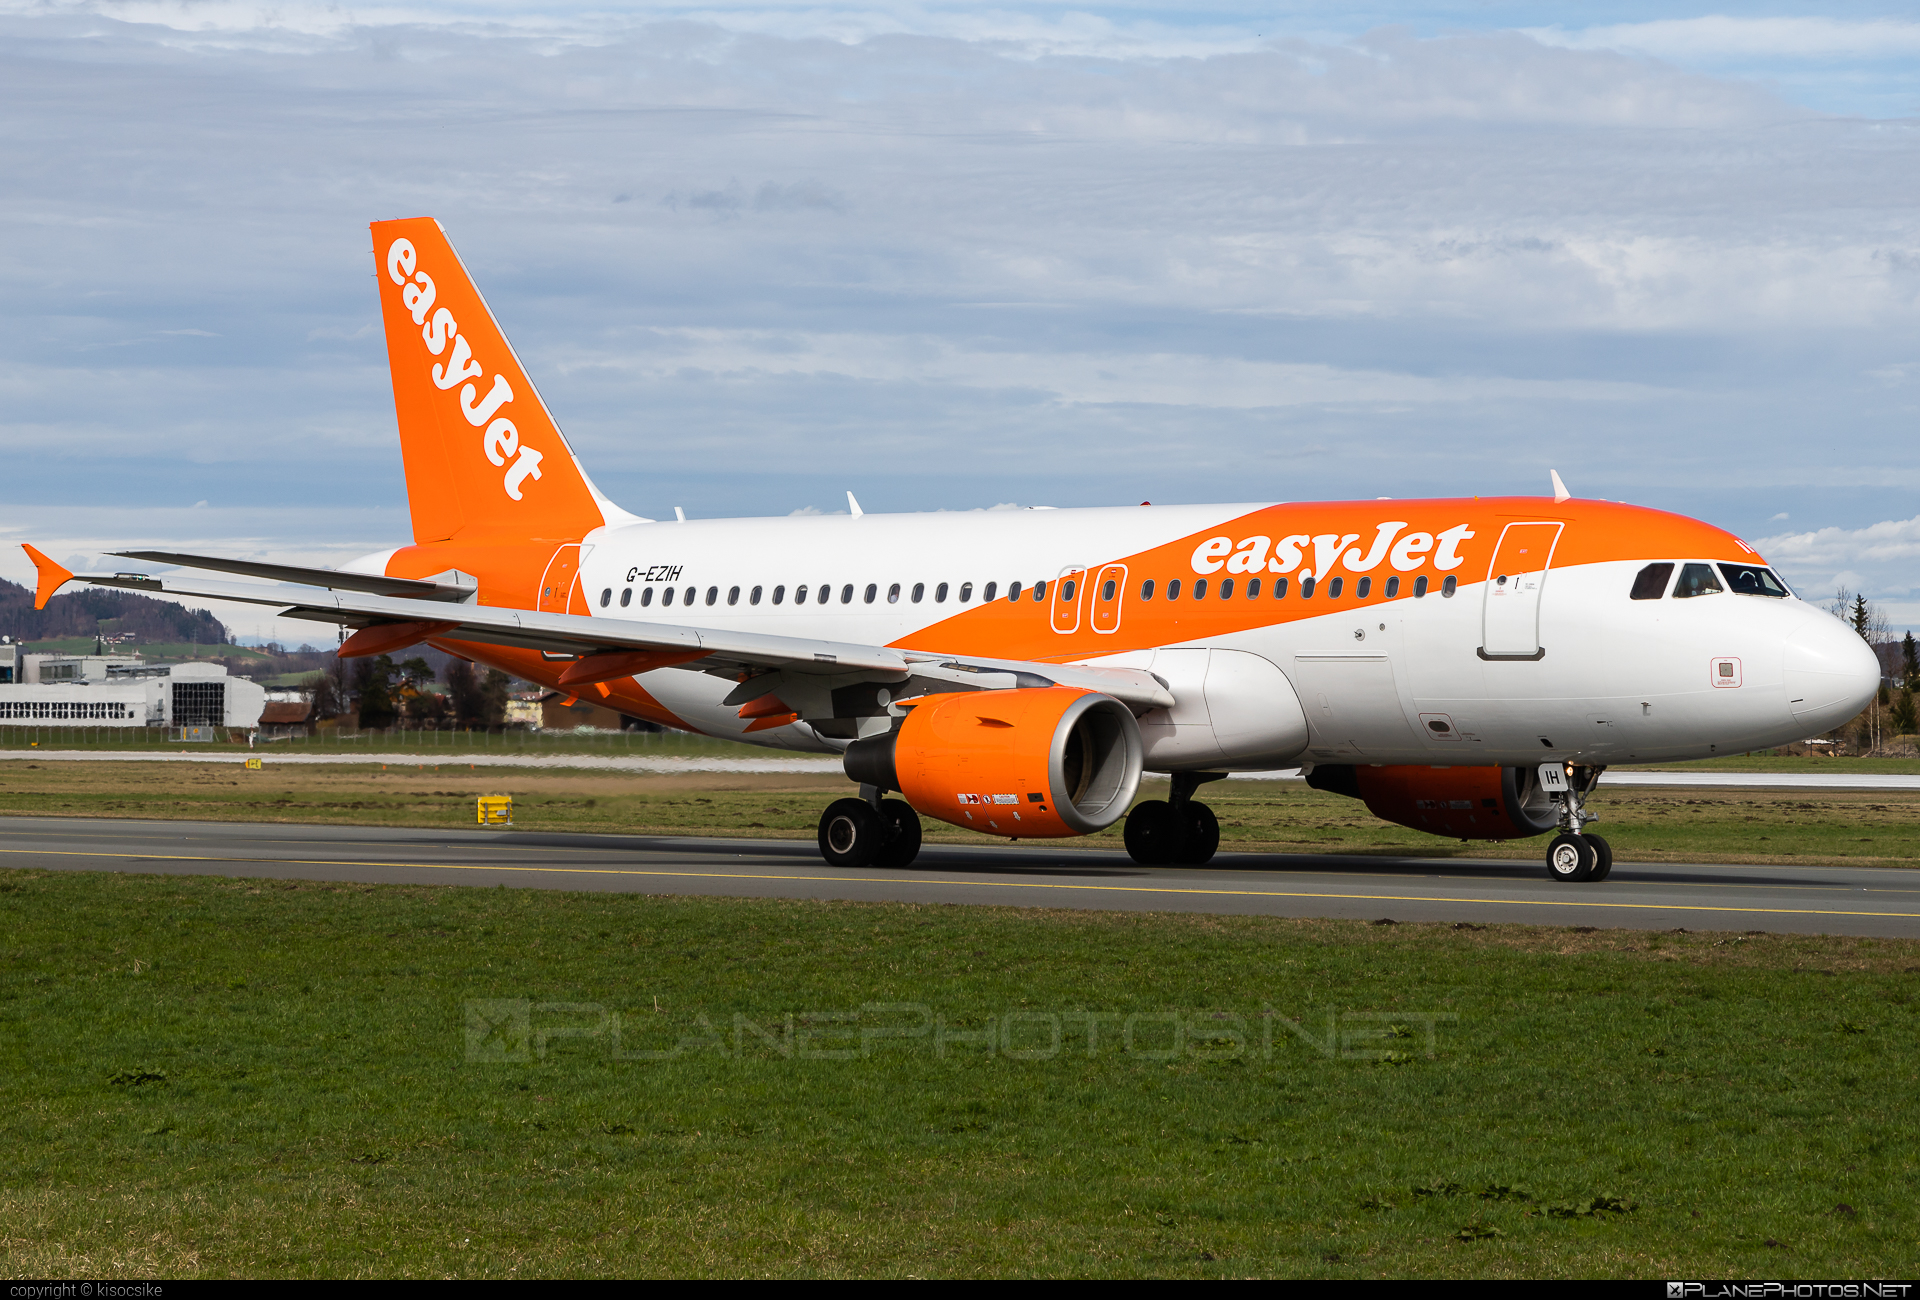 Airbus A319-111 - G-EZIH operated by easyJet #a319 #a320family #airbus #airbus319 #easyjet